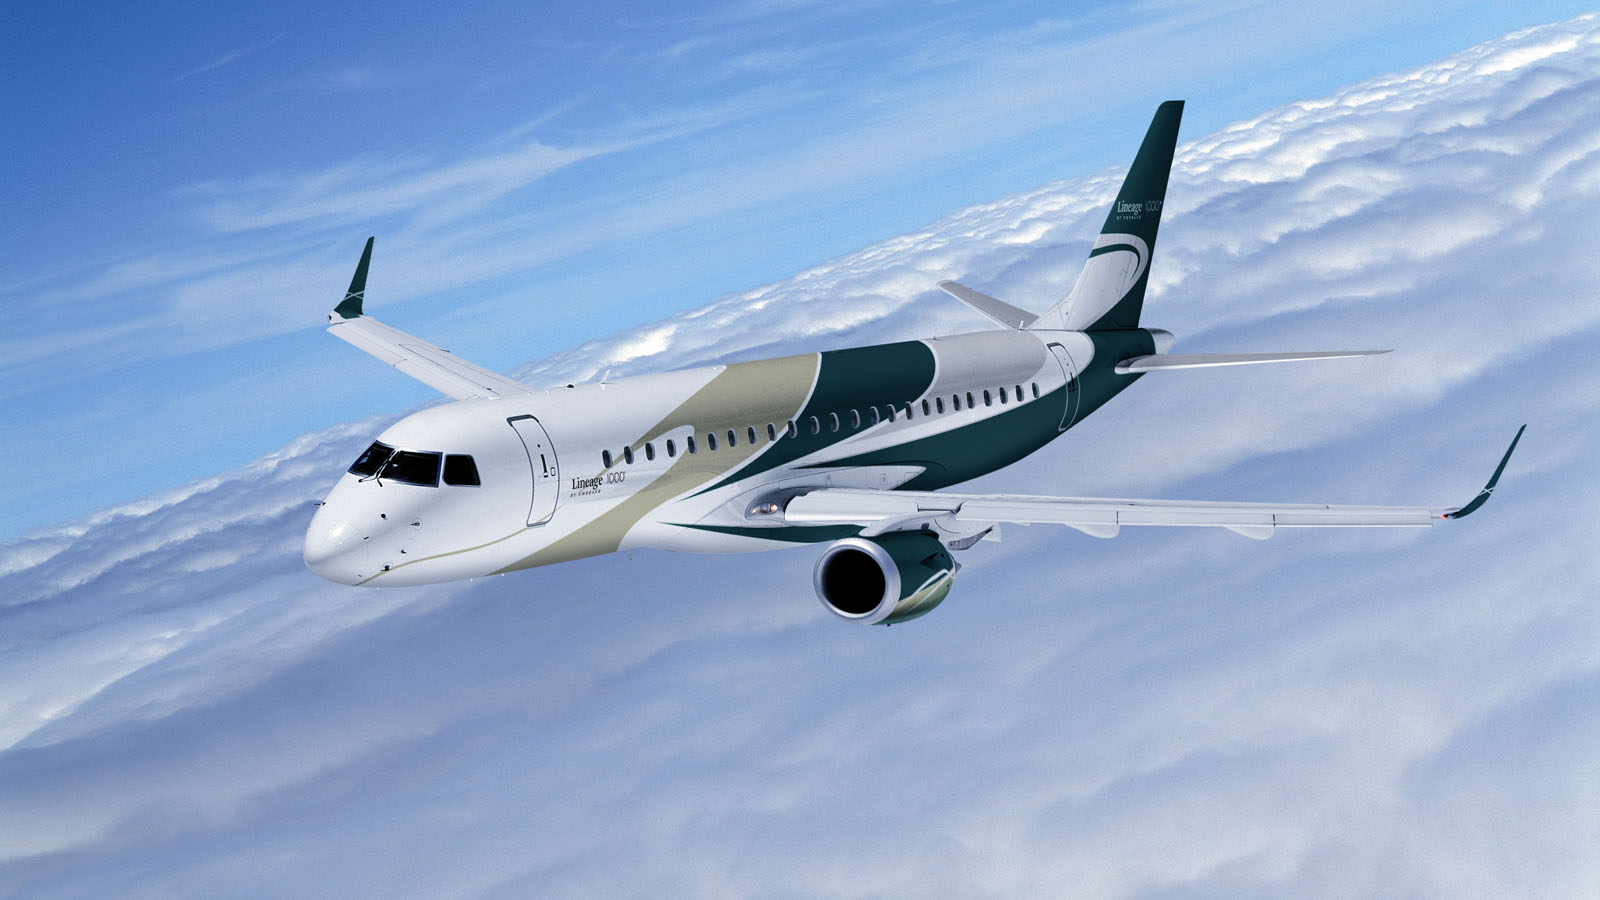 Embraer_Lineage_1000_Exterior